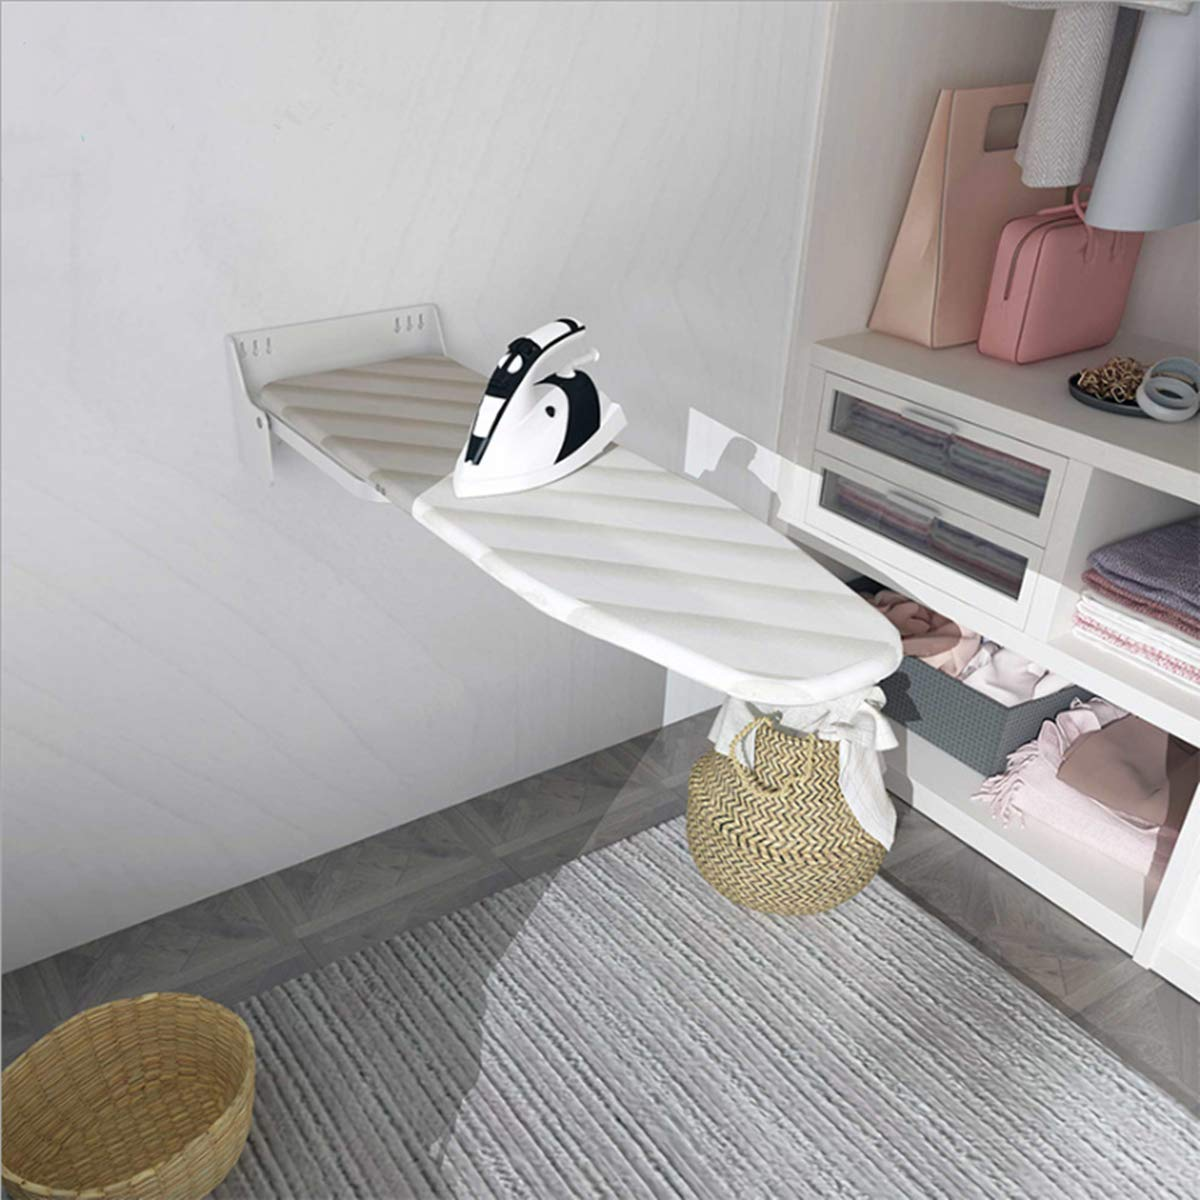 Foldable /& Retractable Closet Ironing Board uyoyous Pull-Out Ironing Board with Cover